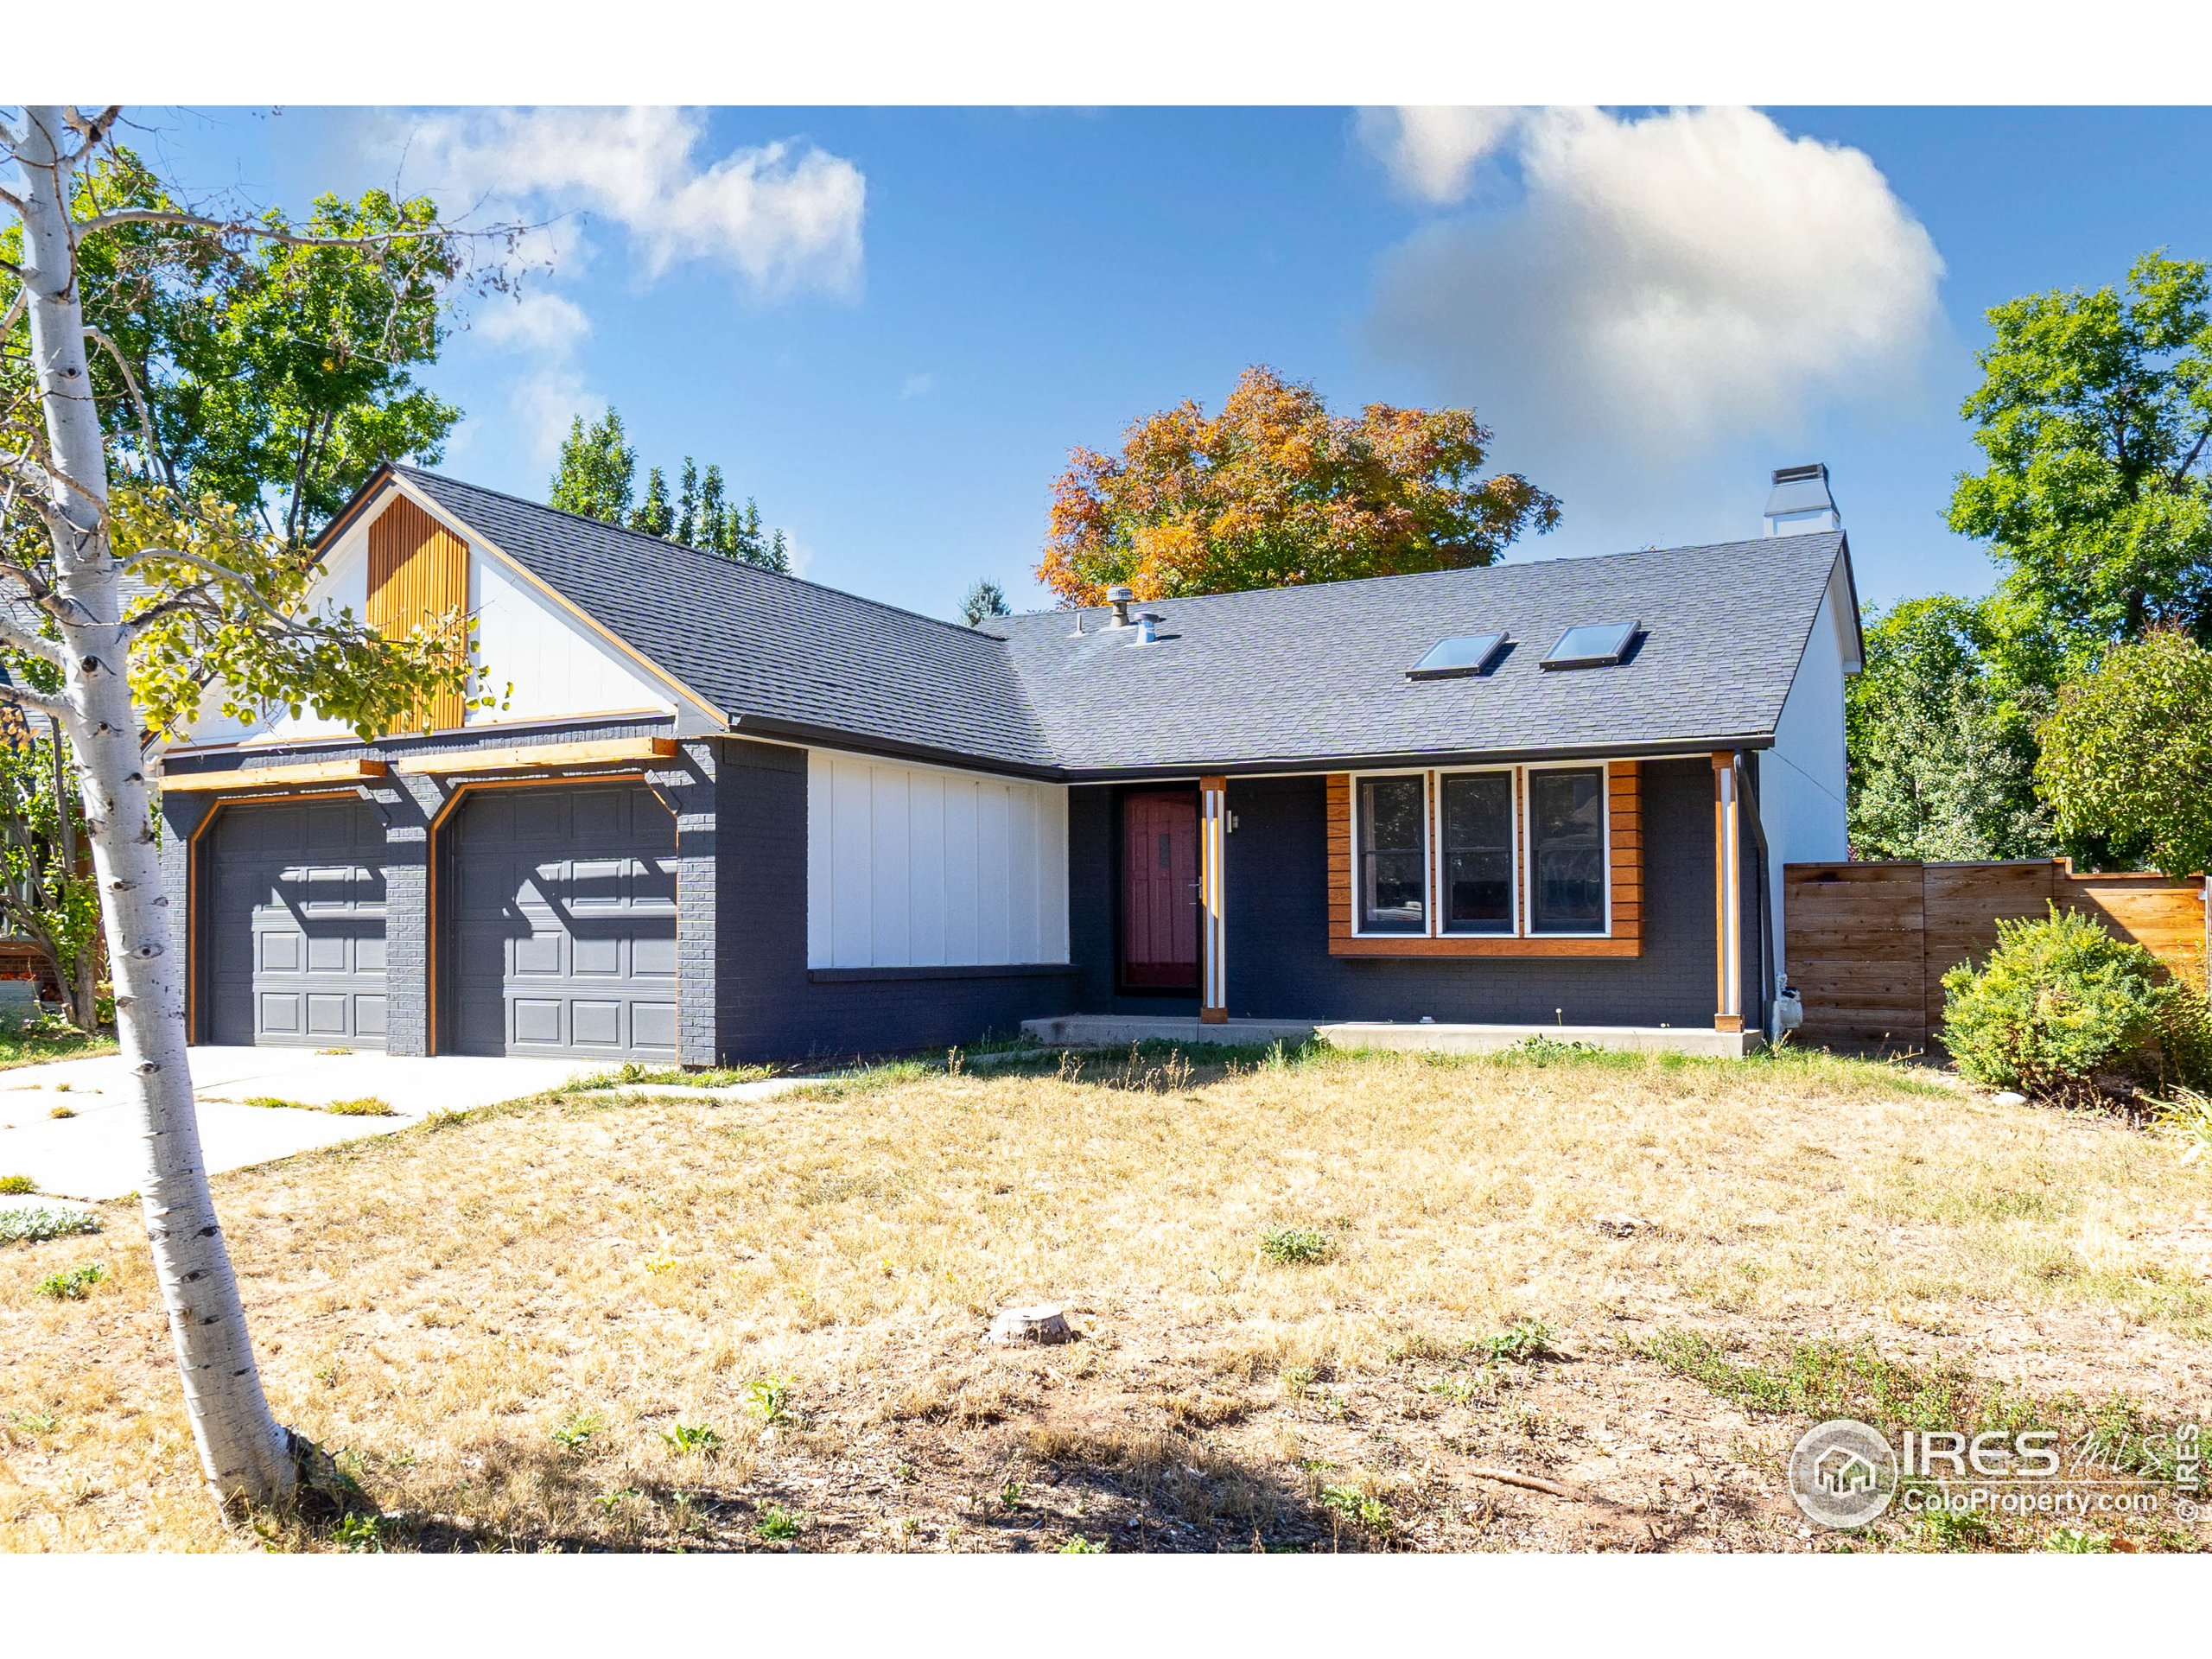 4119 Granby Ct, Fort Collins, CO 80526